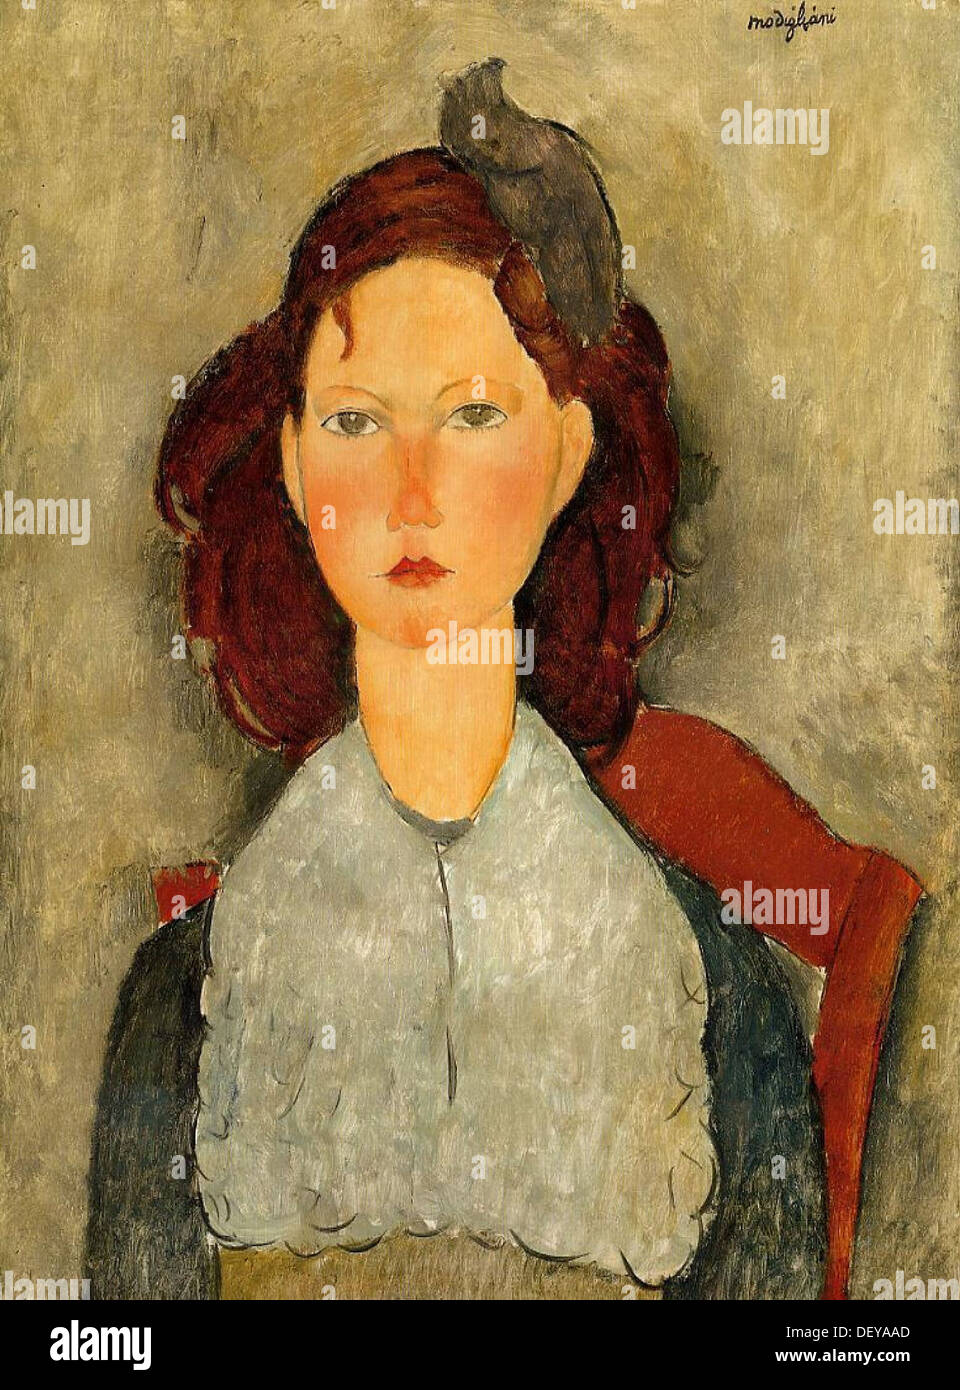 Amedeo Modigliani - Sitting Girl - 1918 - National Gallery of Art - Washington - Stock Image